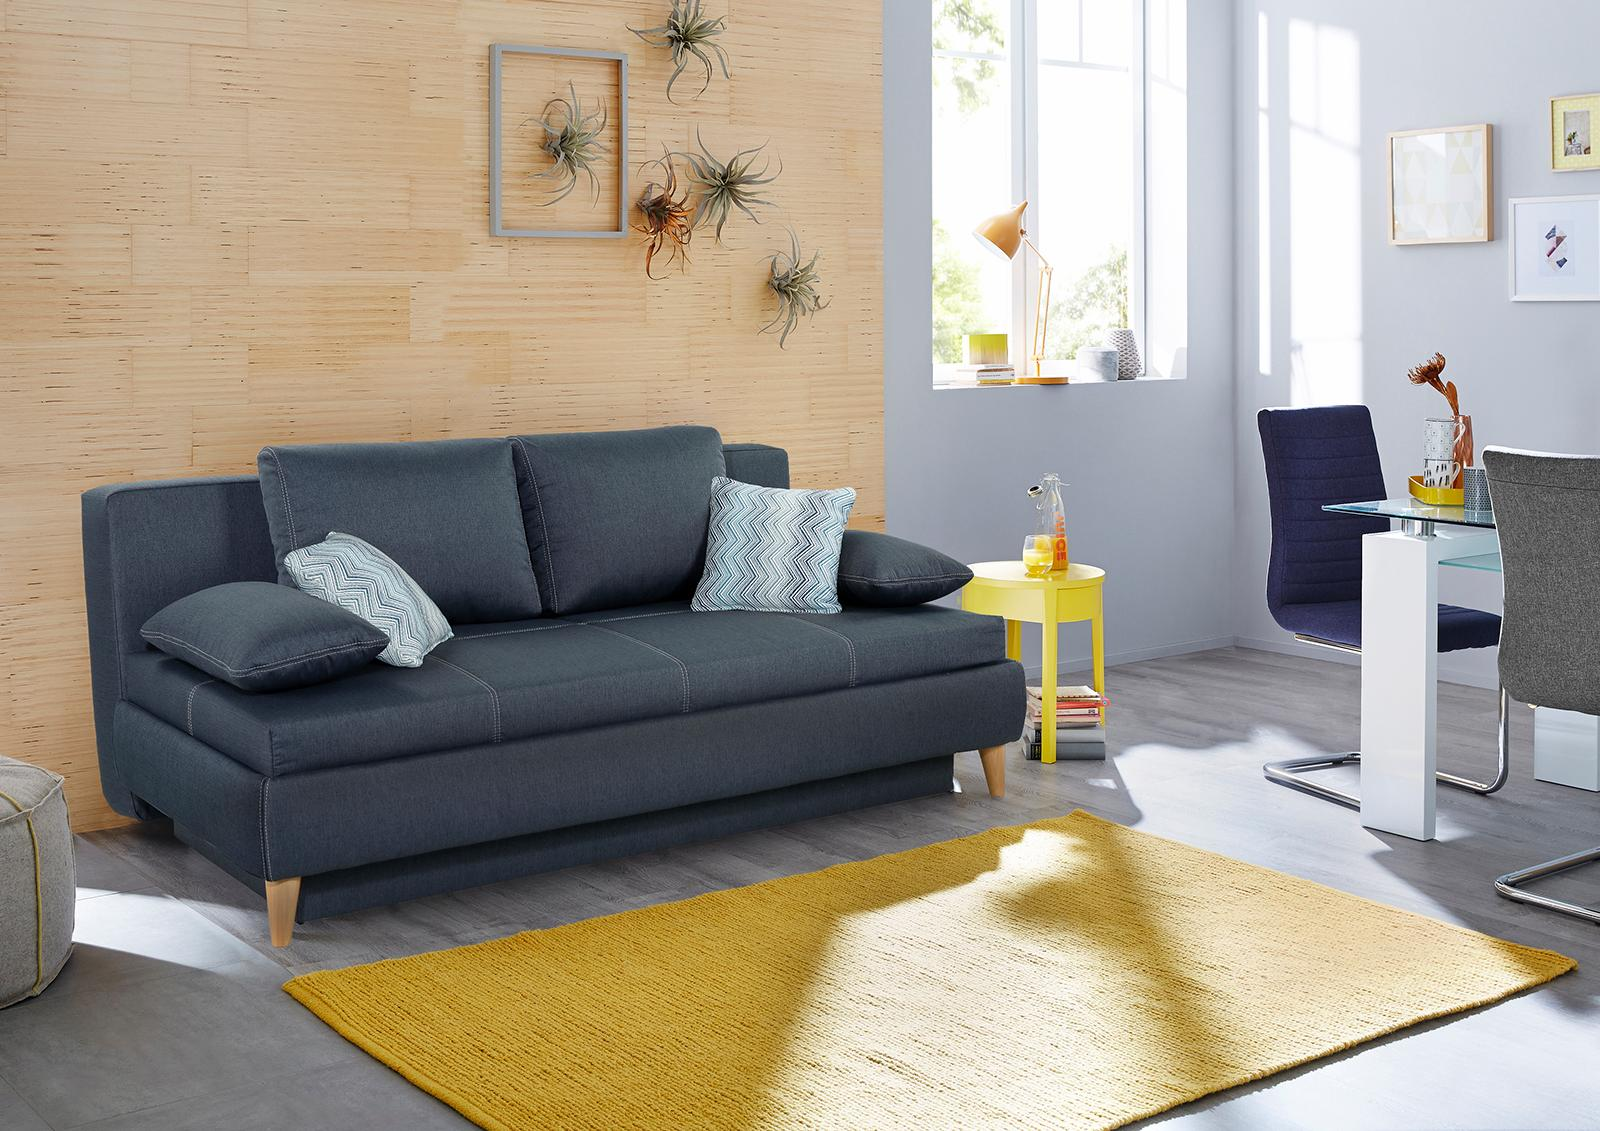 Home affaire Schlafsofa